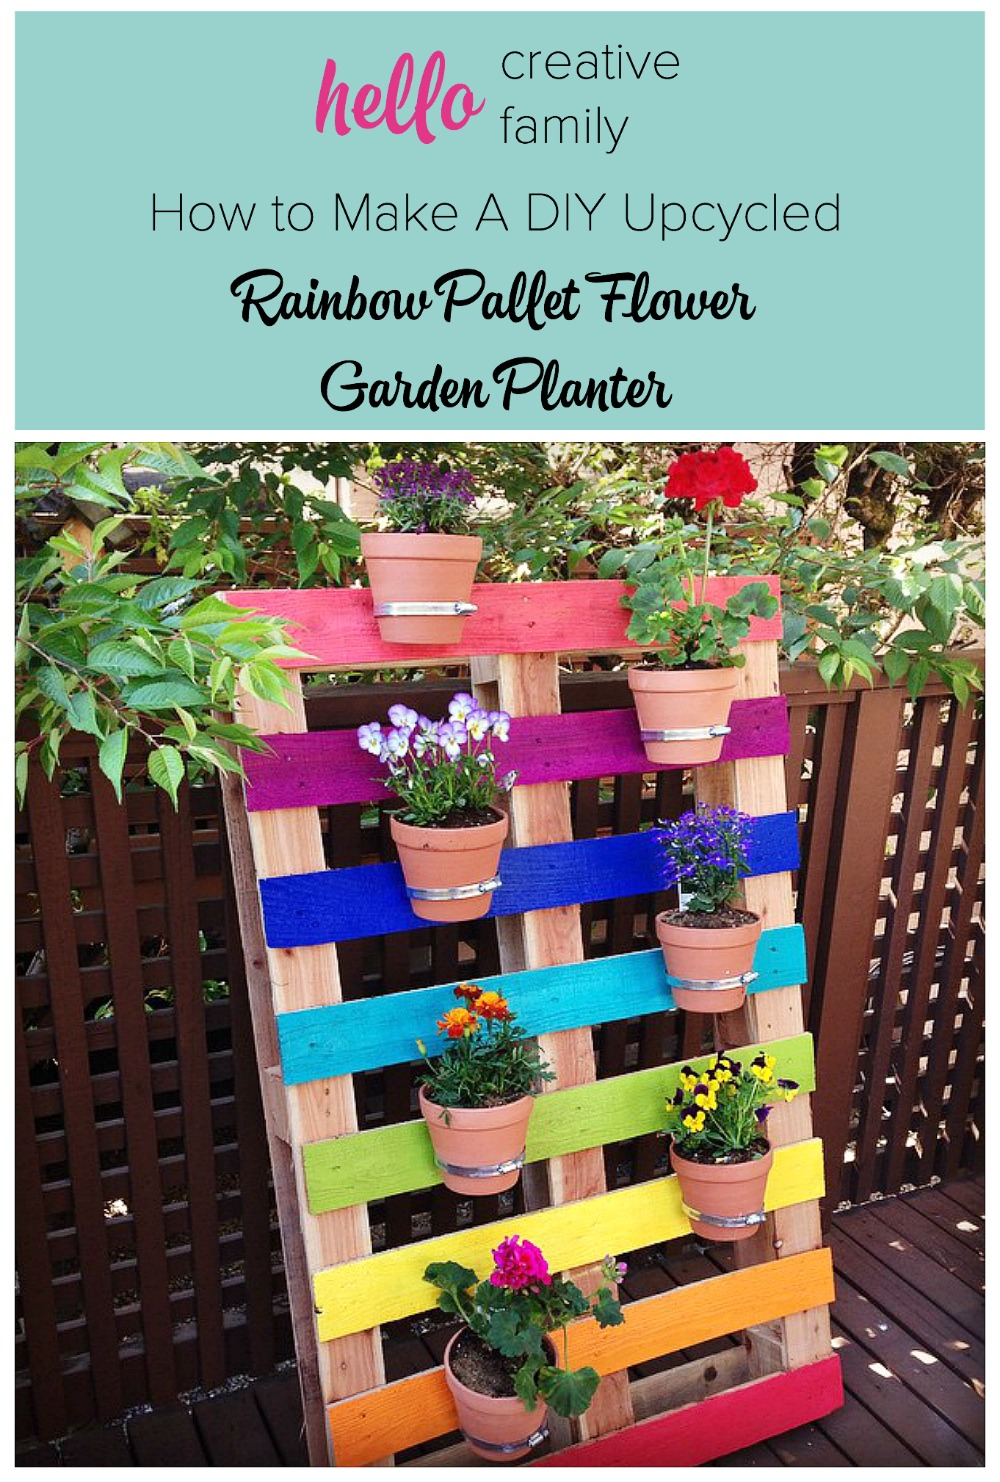 Create A Bright Colorful Upcycled Rainbow Pallet Planter Project With These Simple Instructions From Hello